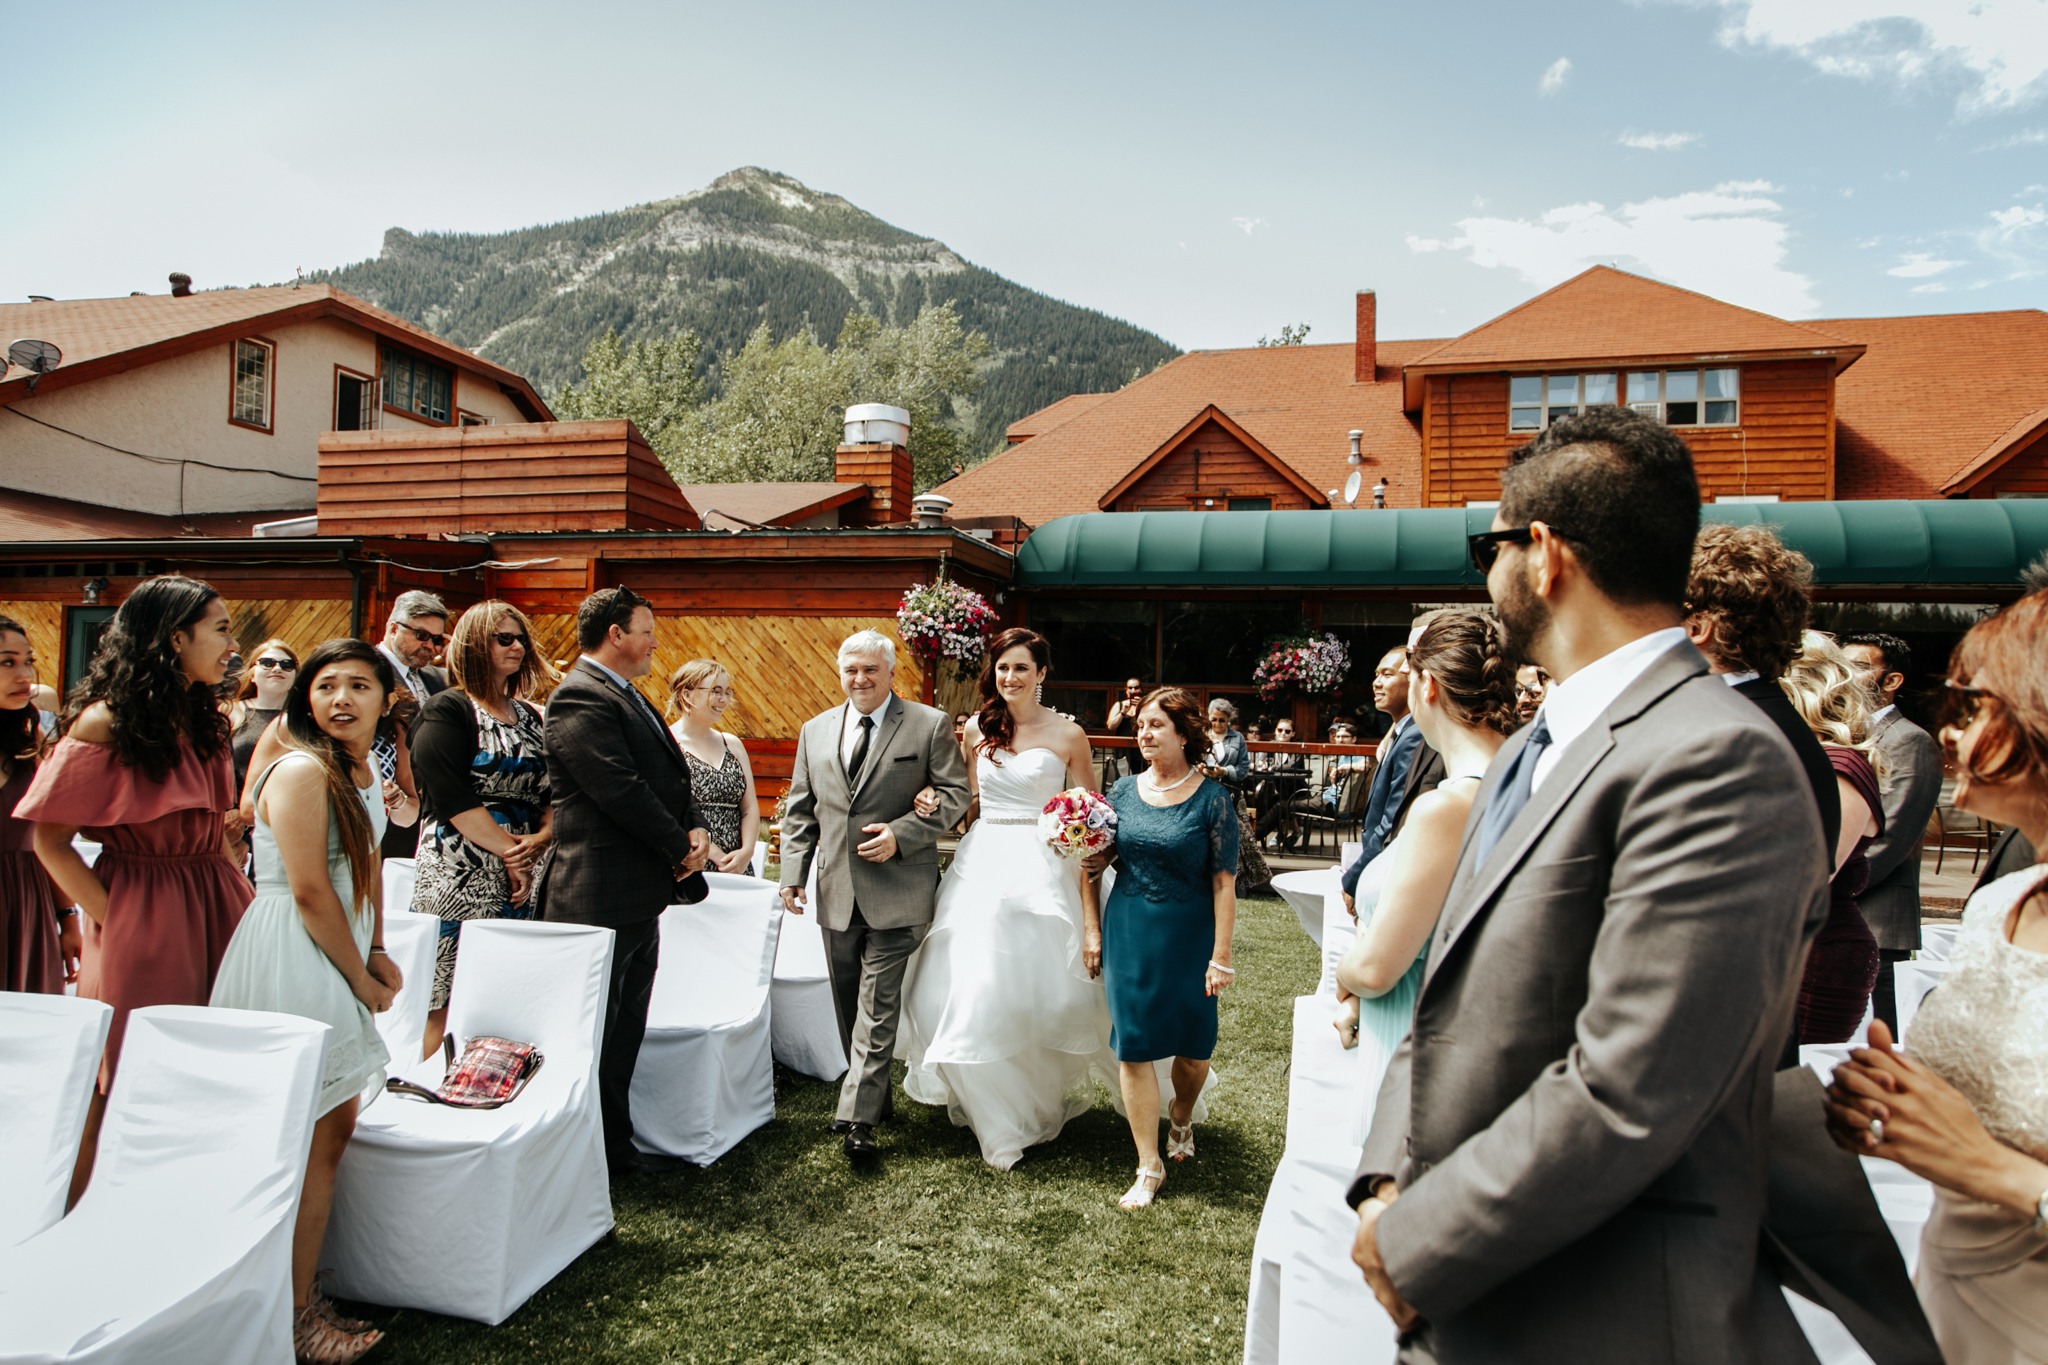 waterton-wedding-photographer-love-and-be-loved-photography-lethbridge-calgary-adam-jodie-image-picture-photo-36.jpg